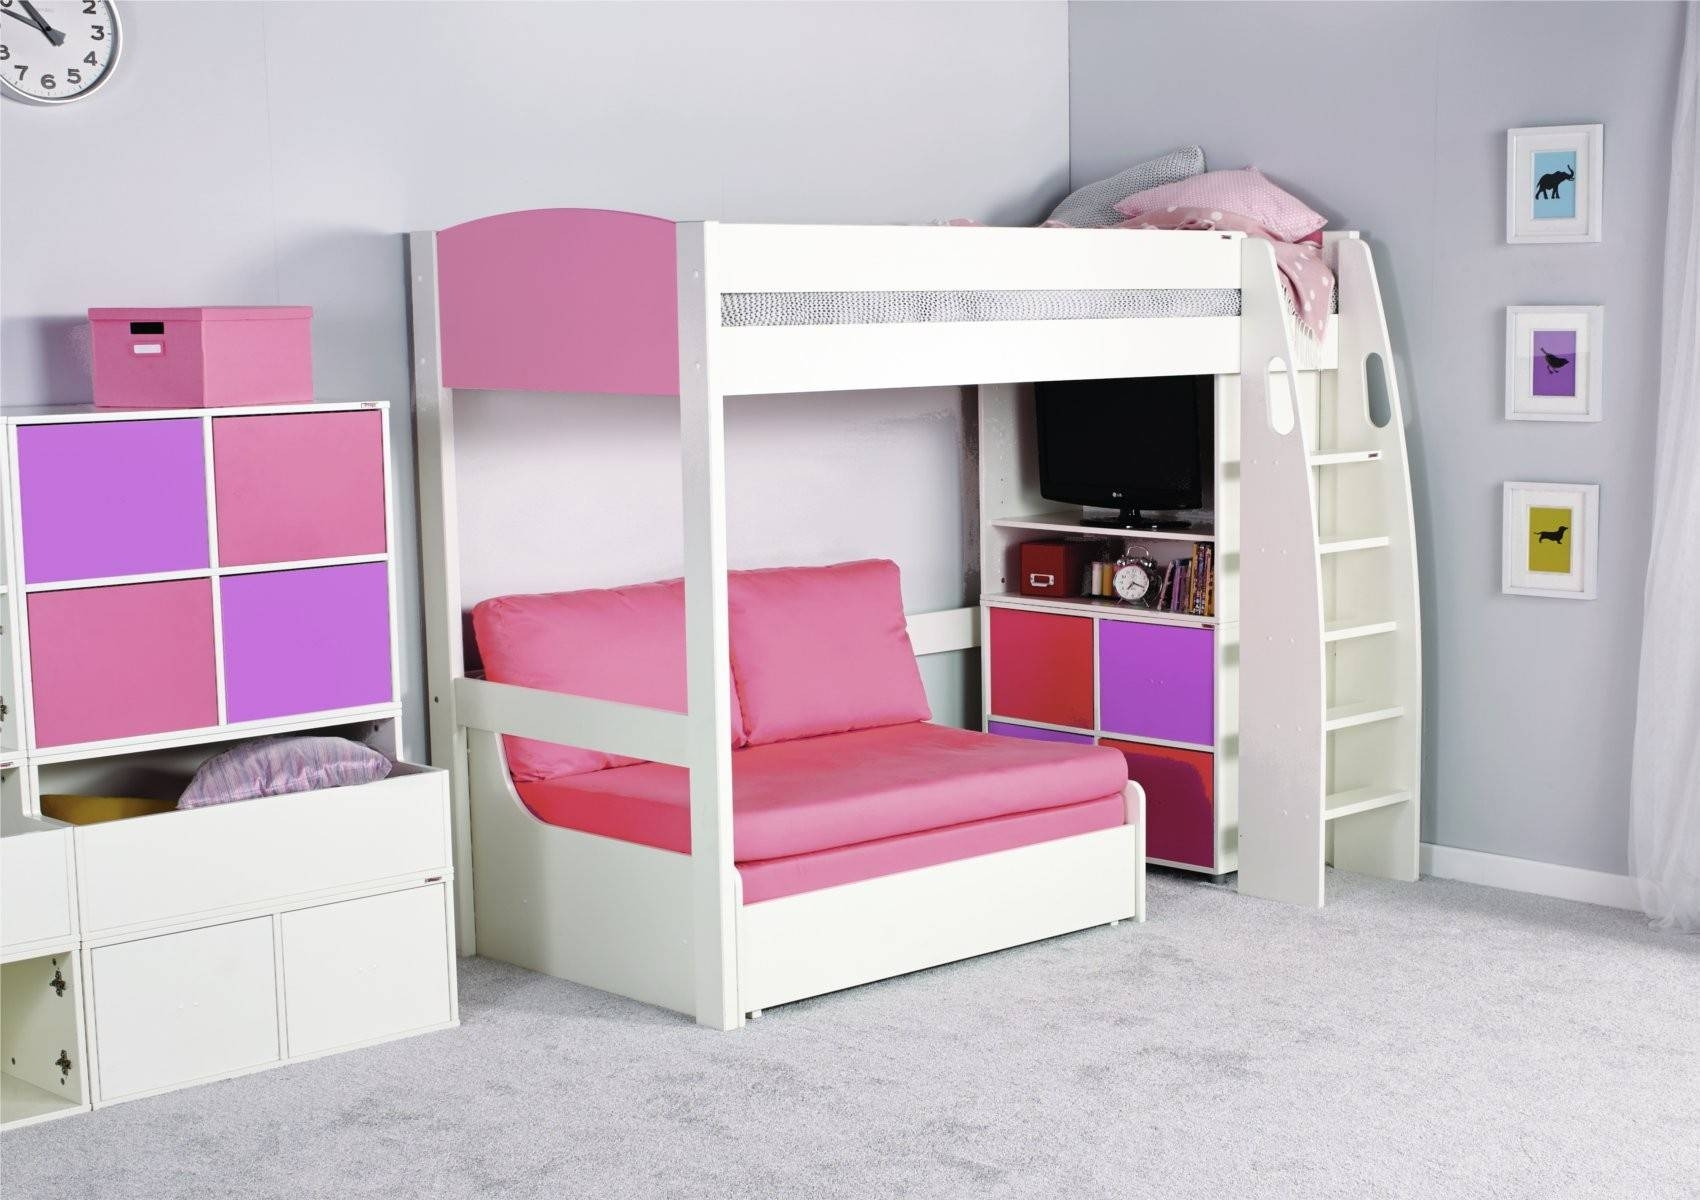 Stompa Unos Double Sofa Bed - Pink - Furniture throughout High Sleeper With Desk and Sofa Bed (Image 25 of 30)